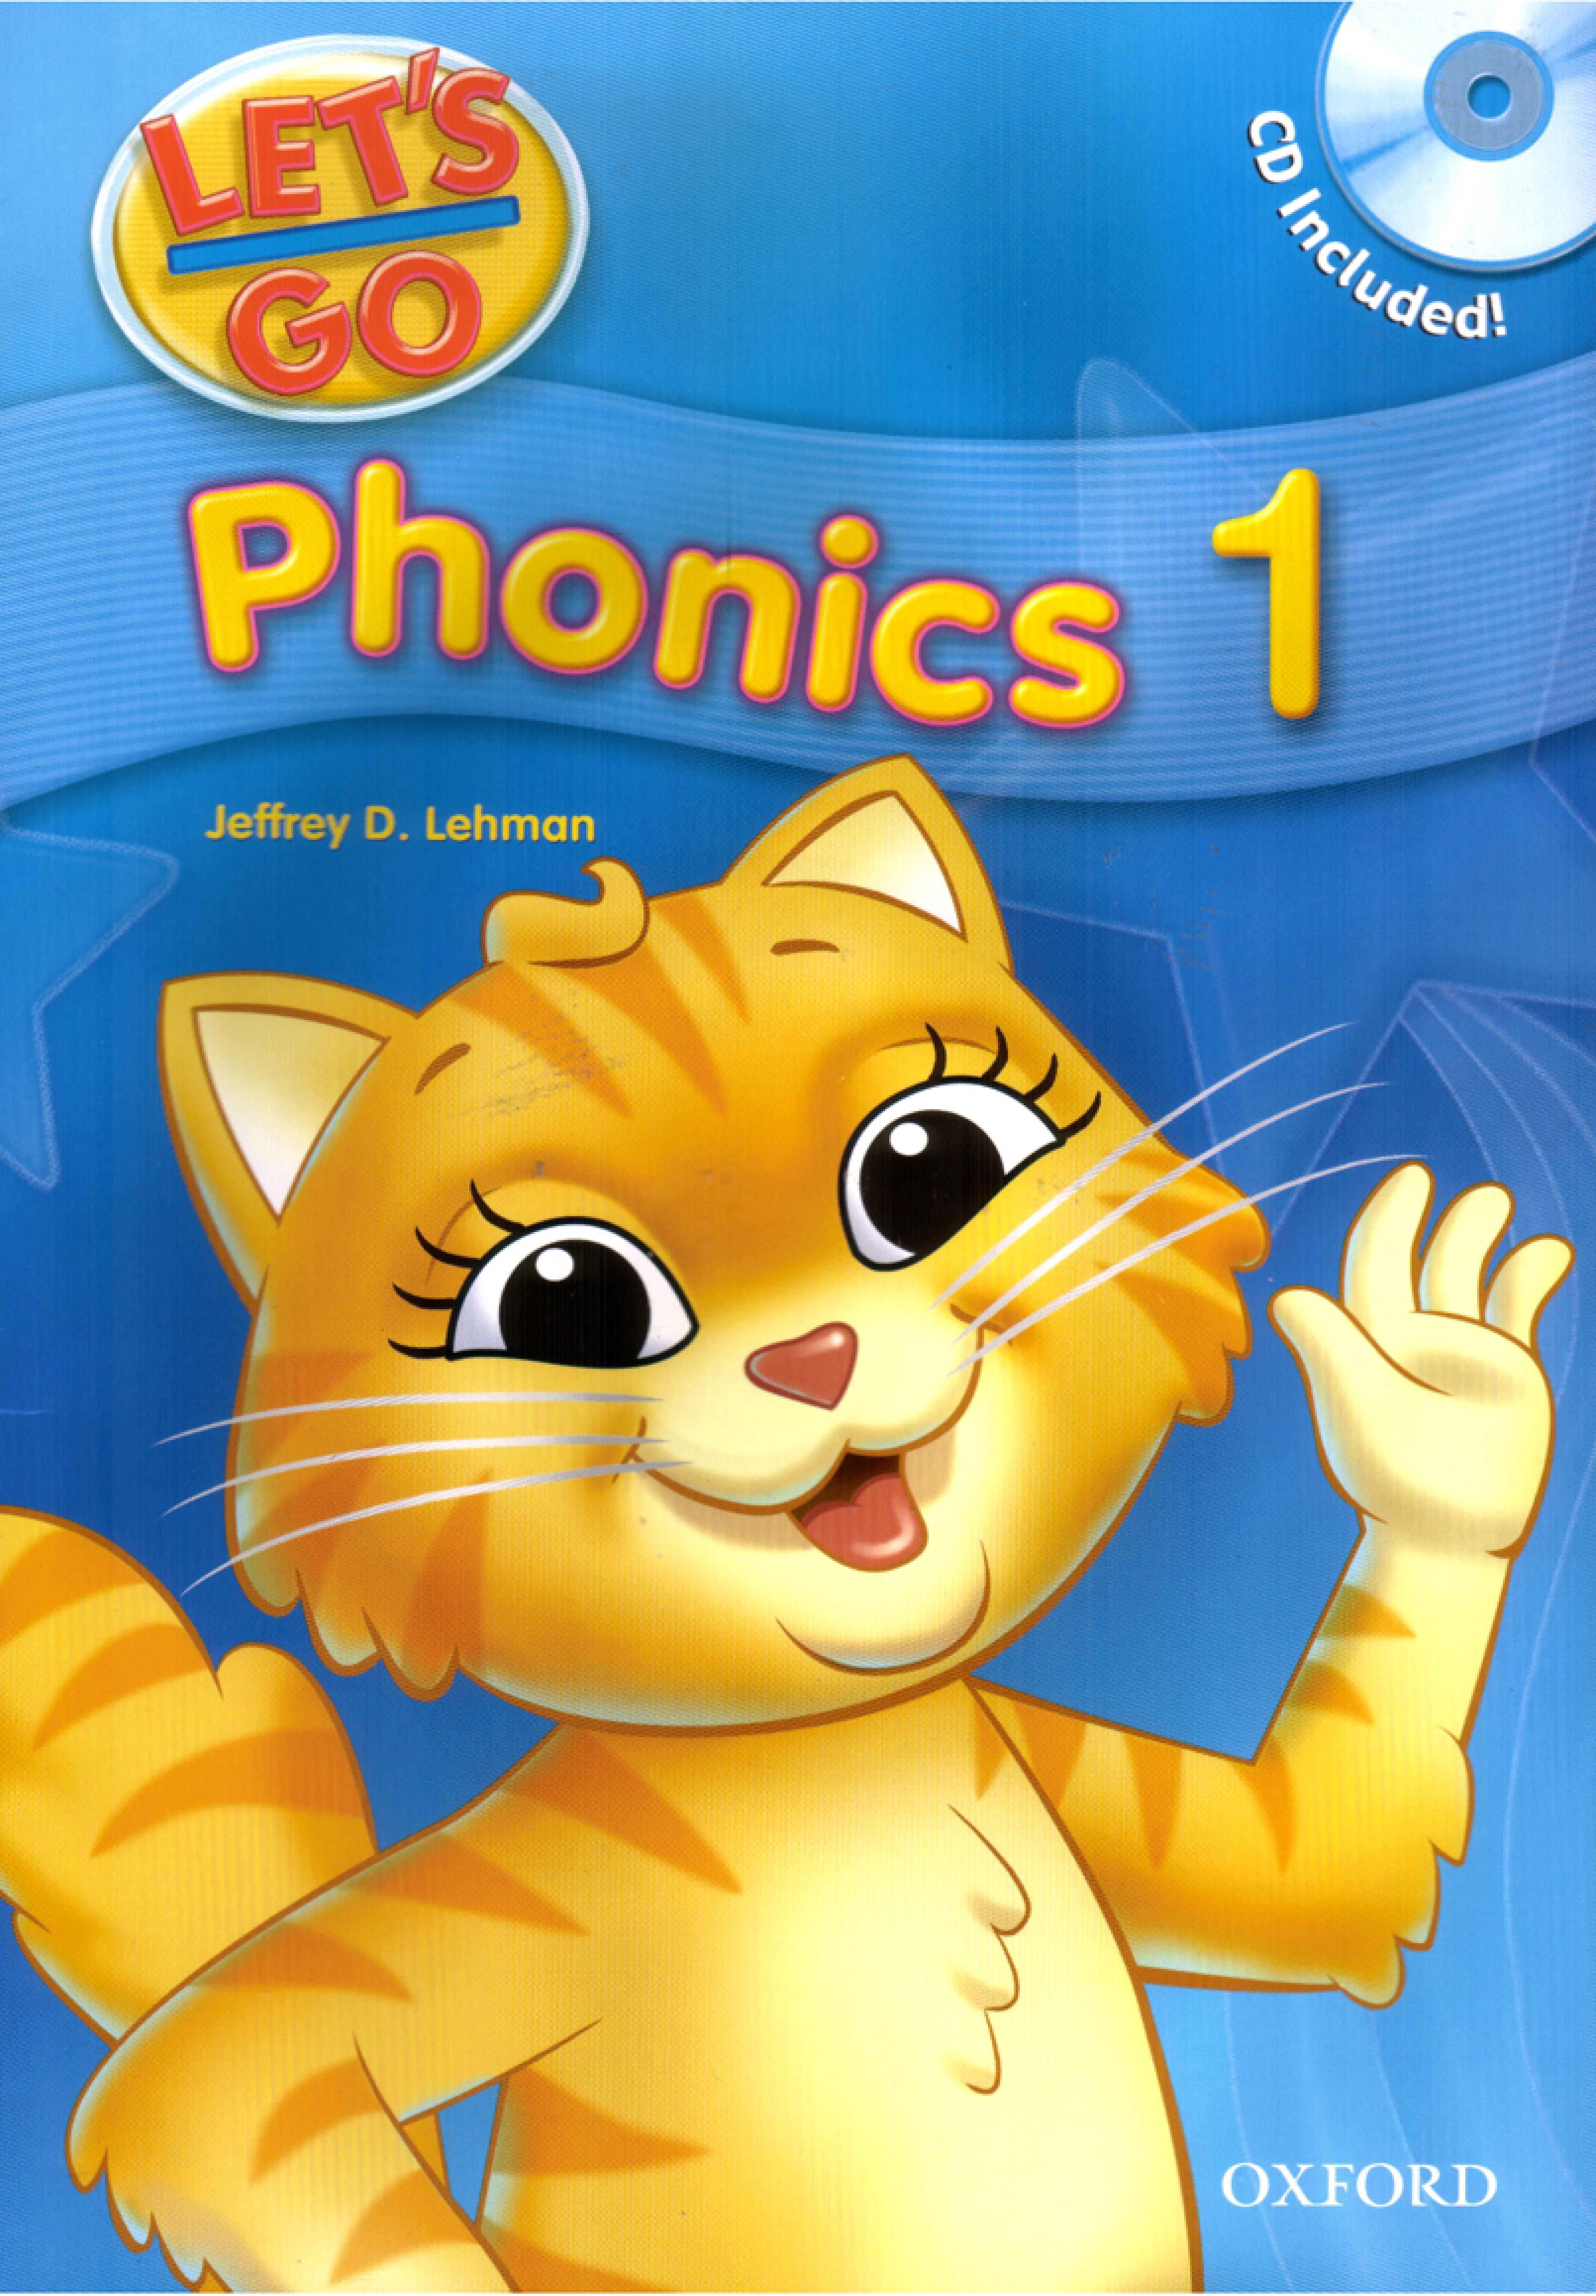 Lets Go Phonics 1 Free Download Borrow And Streaming Internet Archive Phonics Let It Be Letting Go